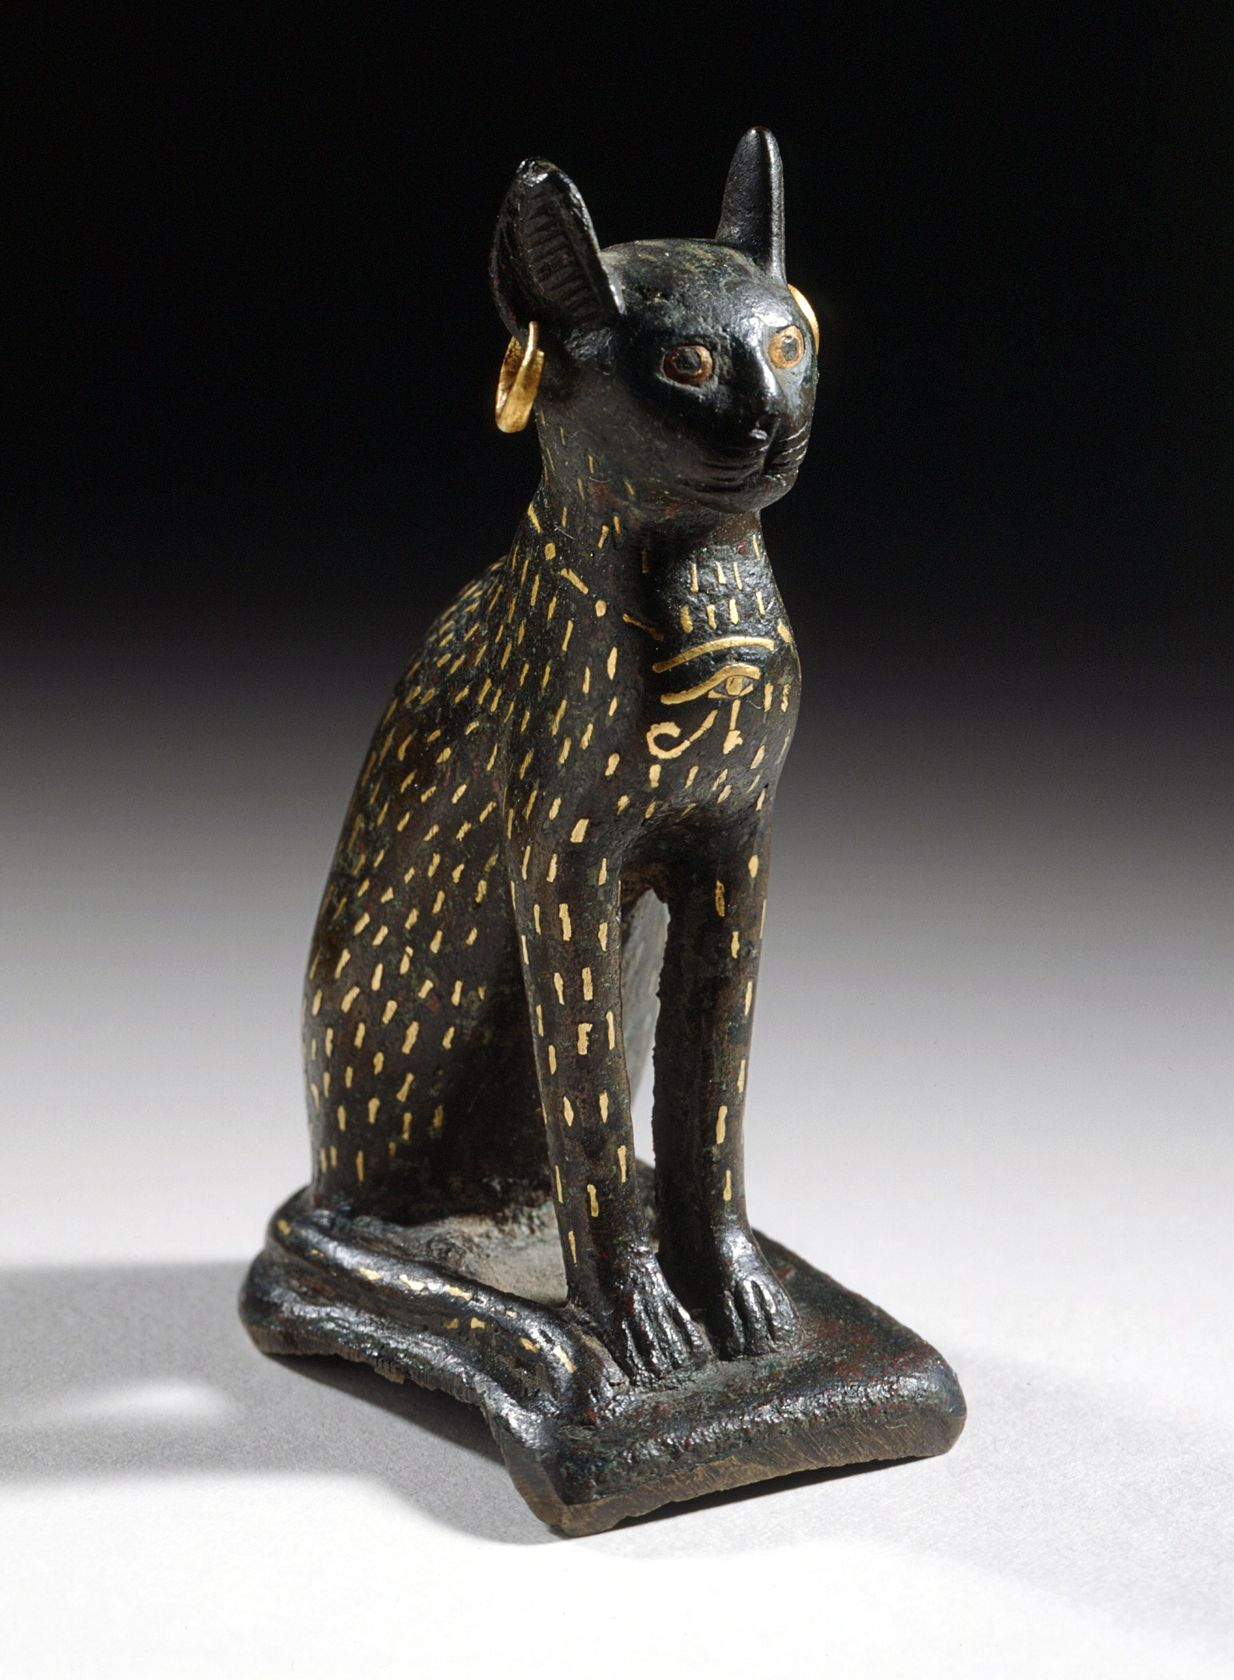 Figurine of the Goddess Bastet as a Cat, Egypt, 21st - 26th Dynasty (1081 - 525 B.C.) - Bronze, inlaid gold